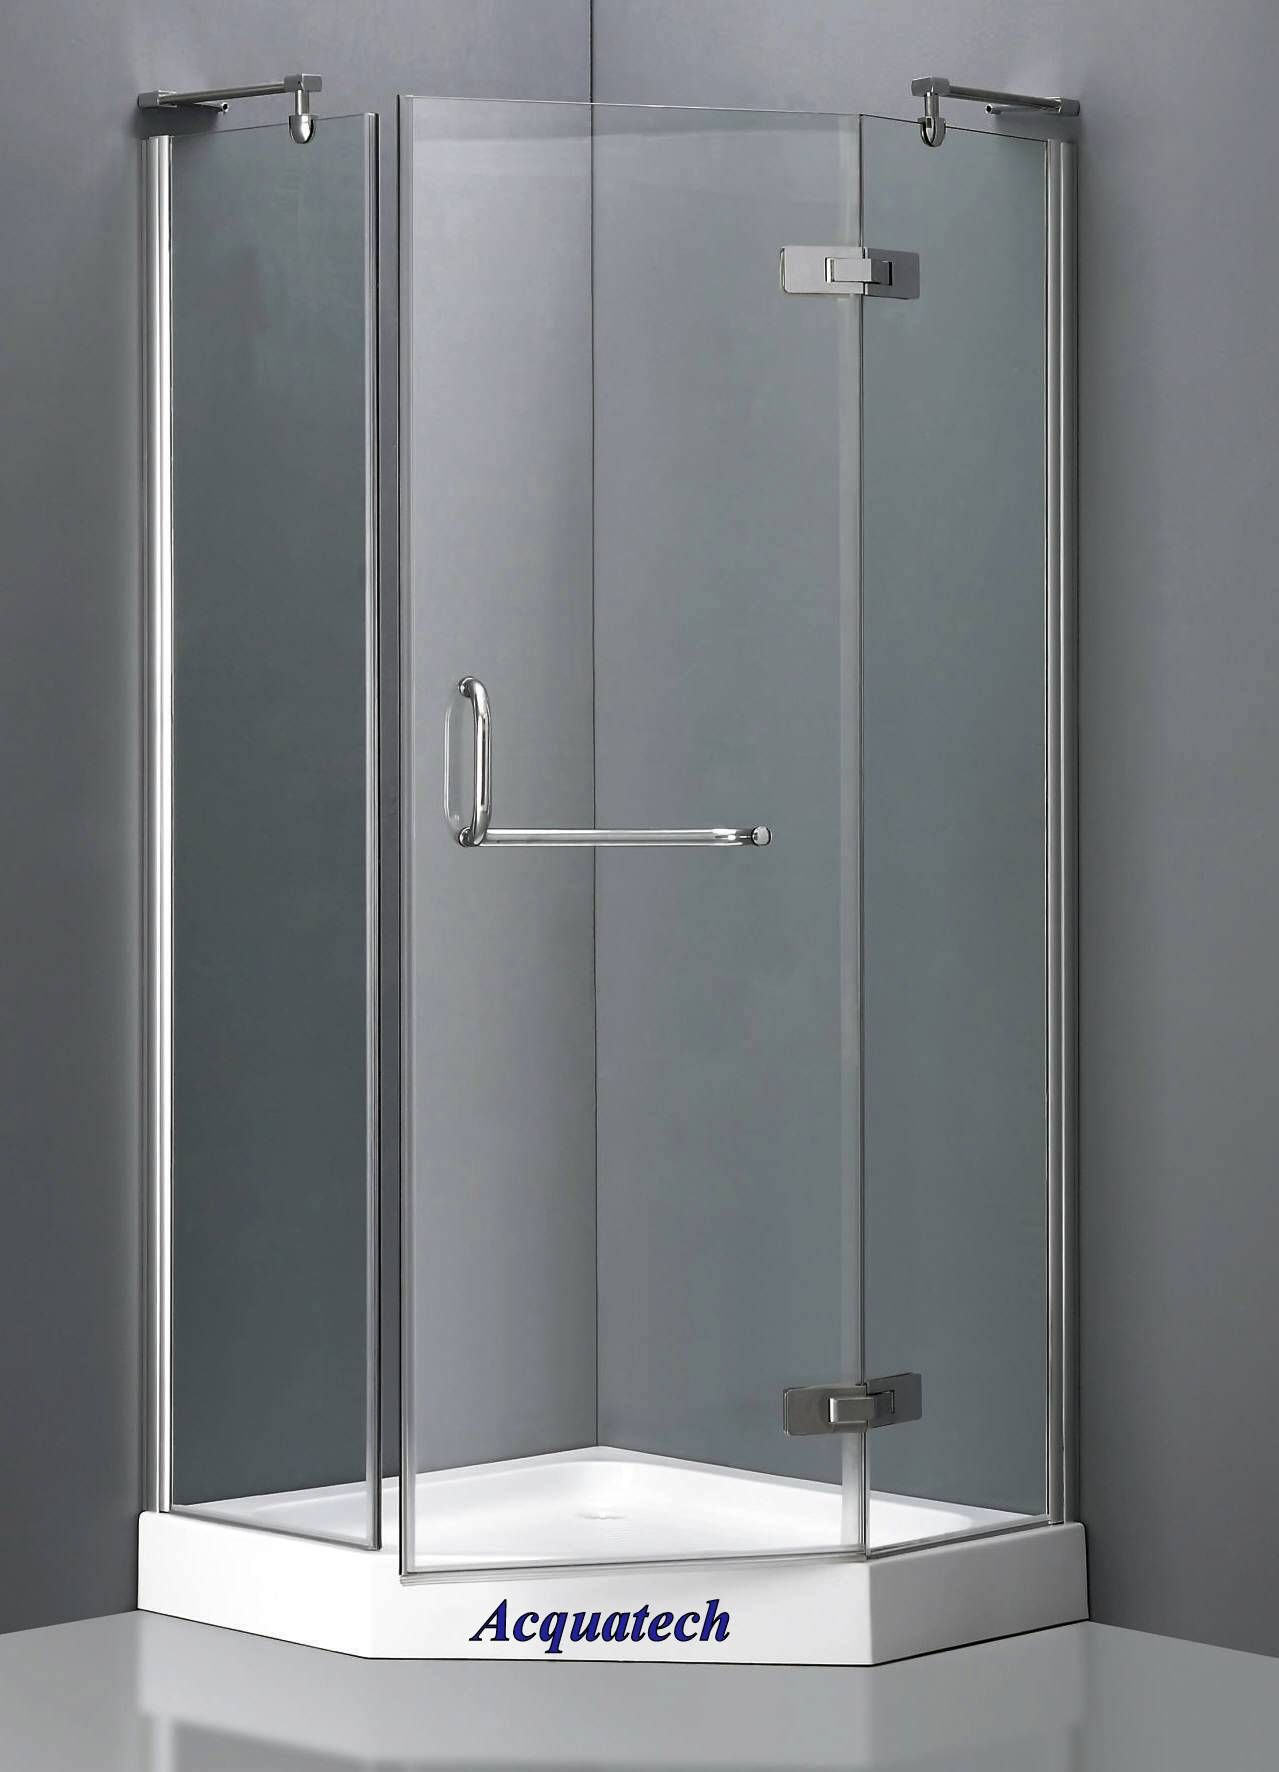 32 inch corner shower stall kits. 35 Inch Neo Angle Corner Shower Enclosure with Aluminum Frame  Item 5007 Basic shower stall 3 x3 My Shelter Hope and Stay Pinterest